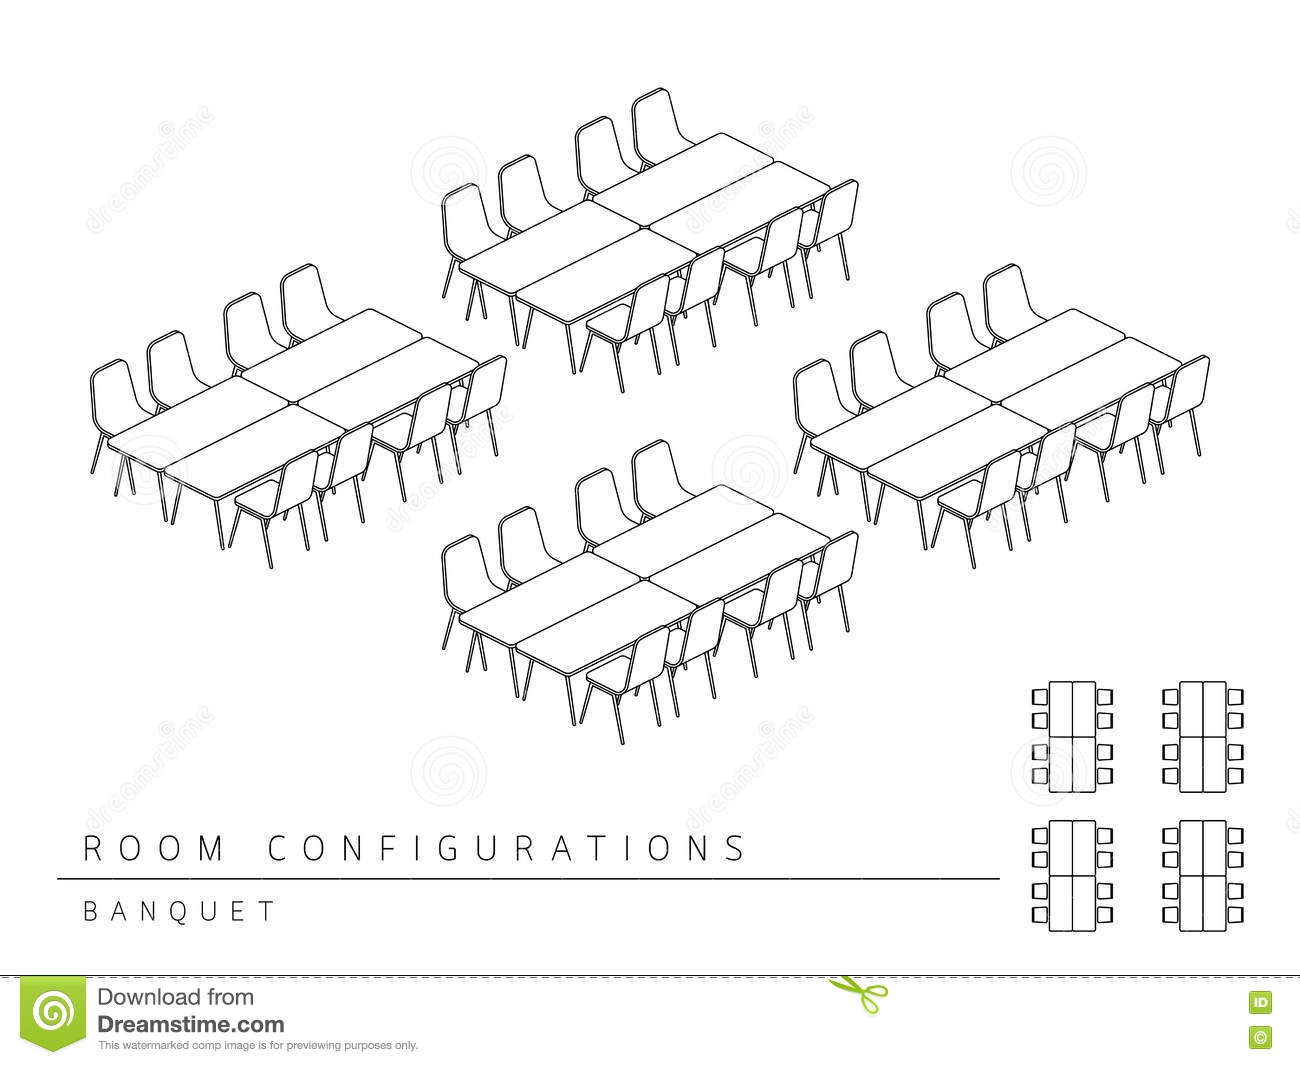 hight resolution of meeting room setup layout configuration banquet style